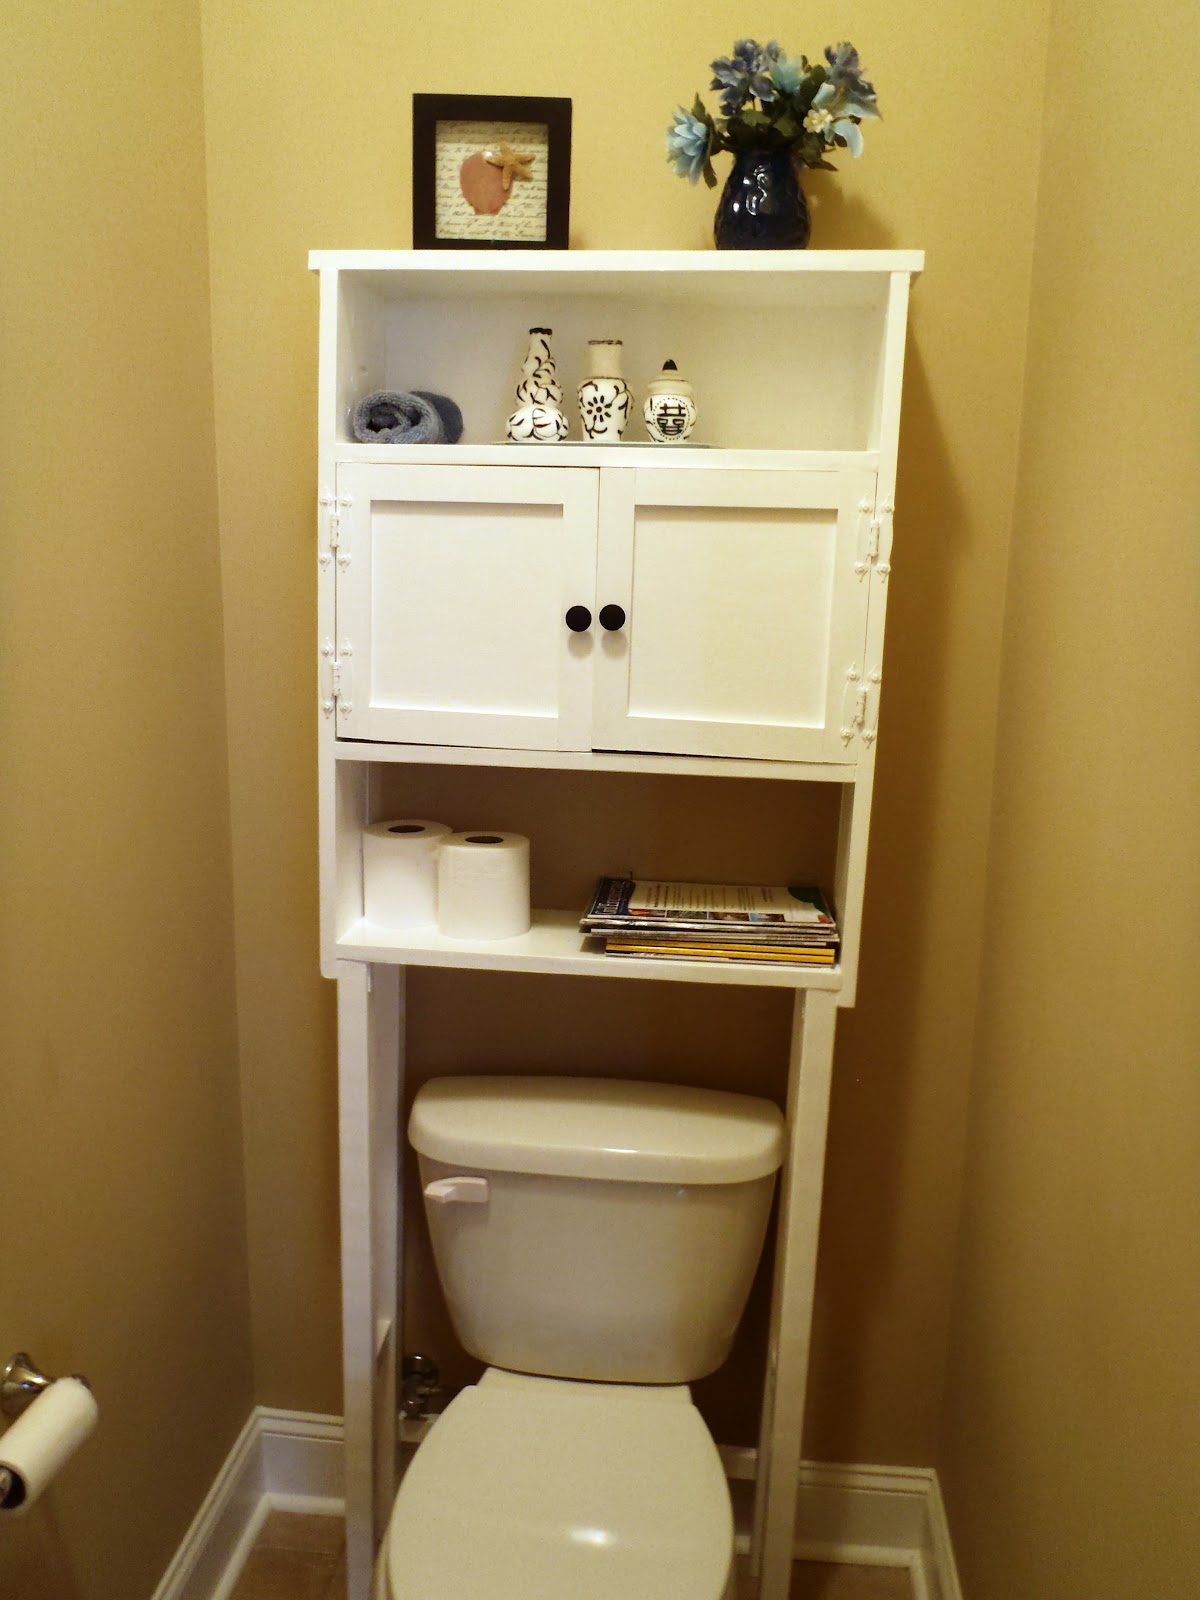 Charmant Space Saver For Bathroom